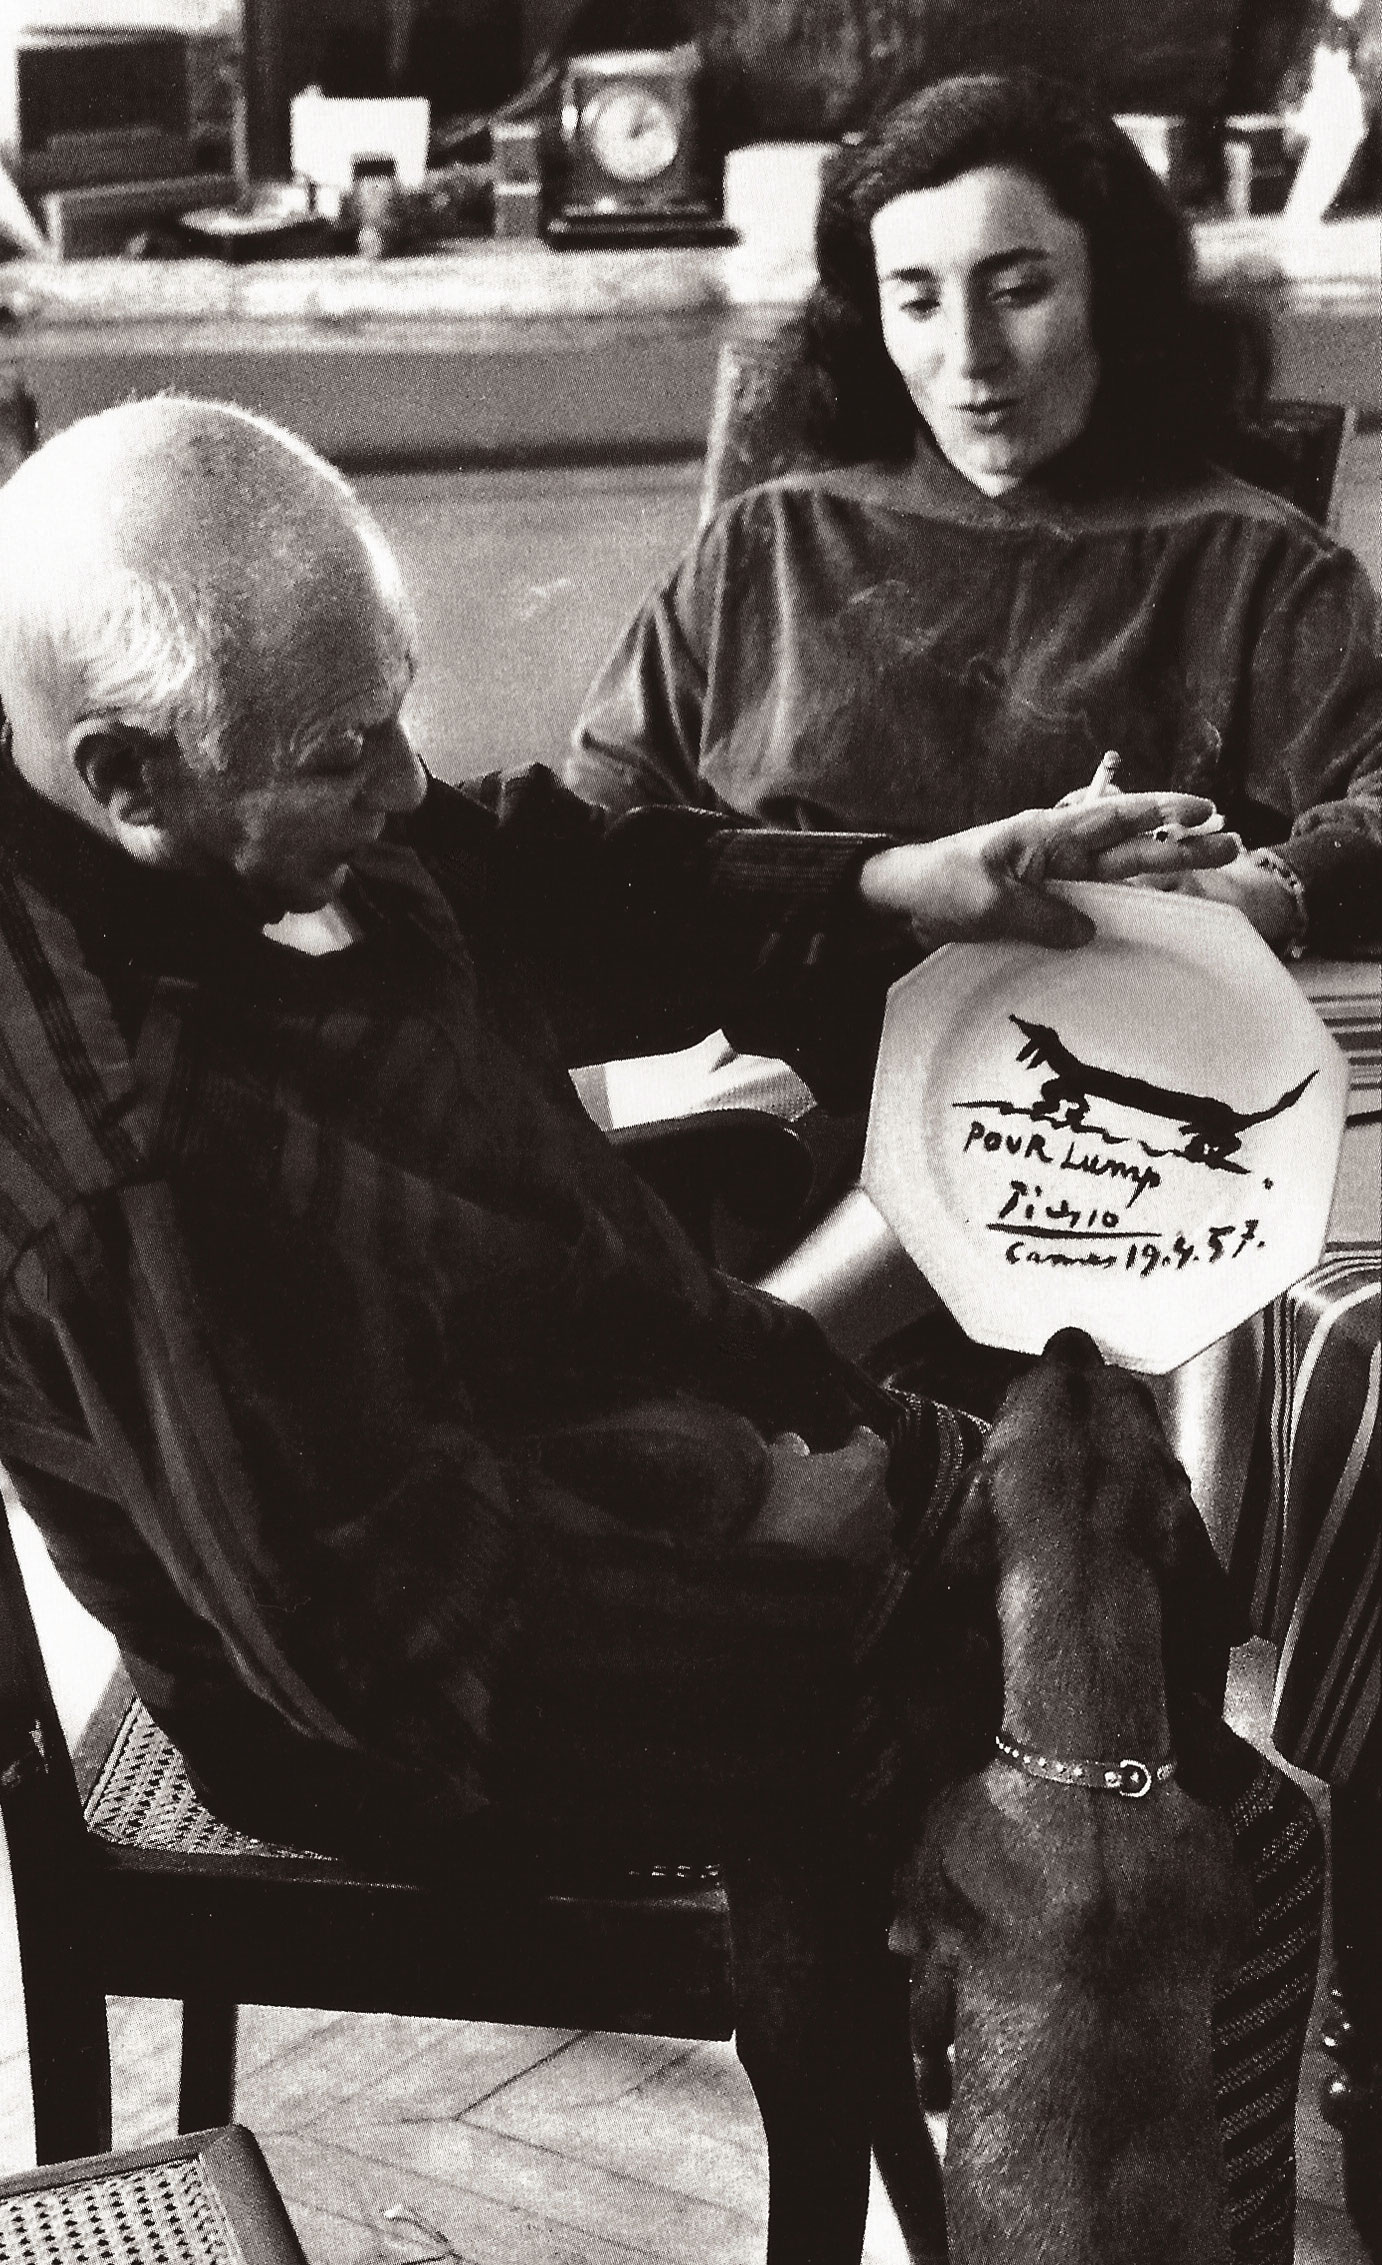 Picasso paints dog Lump a dinner plate.